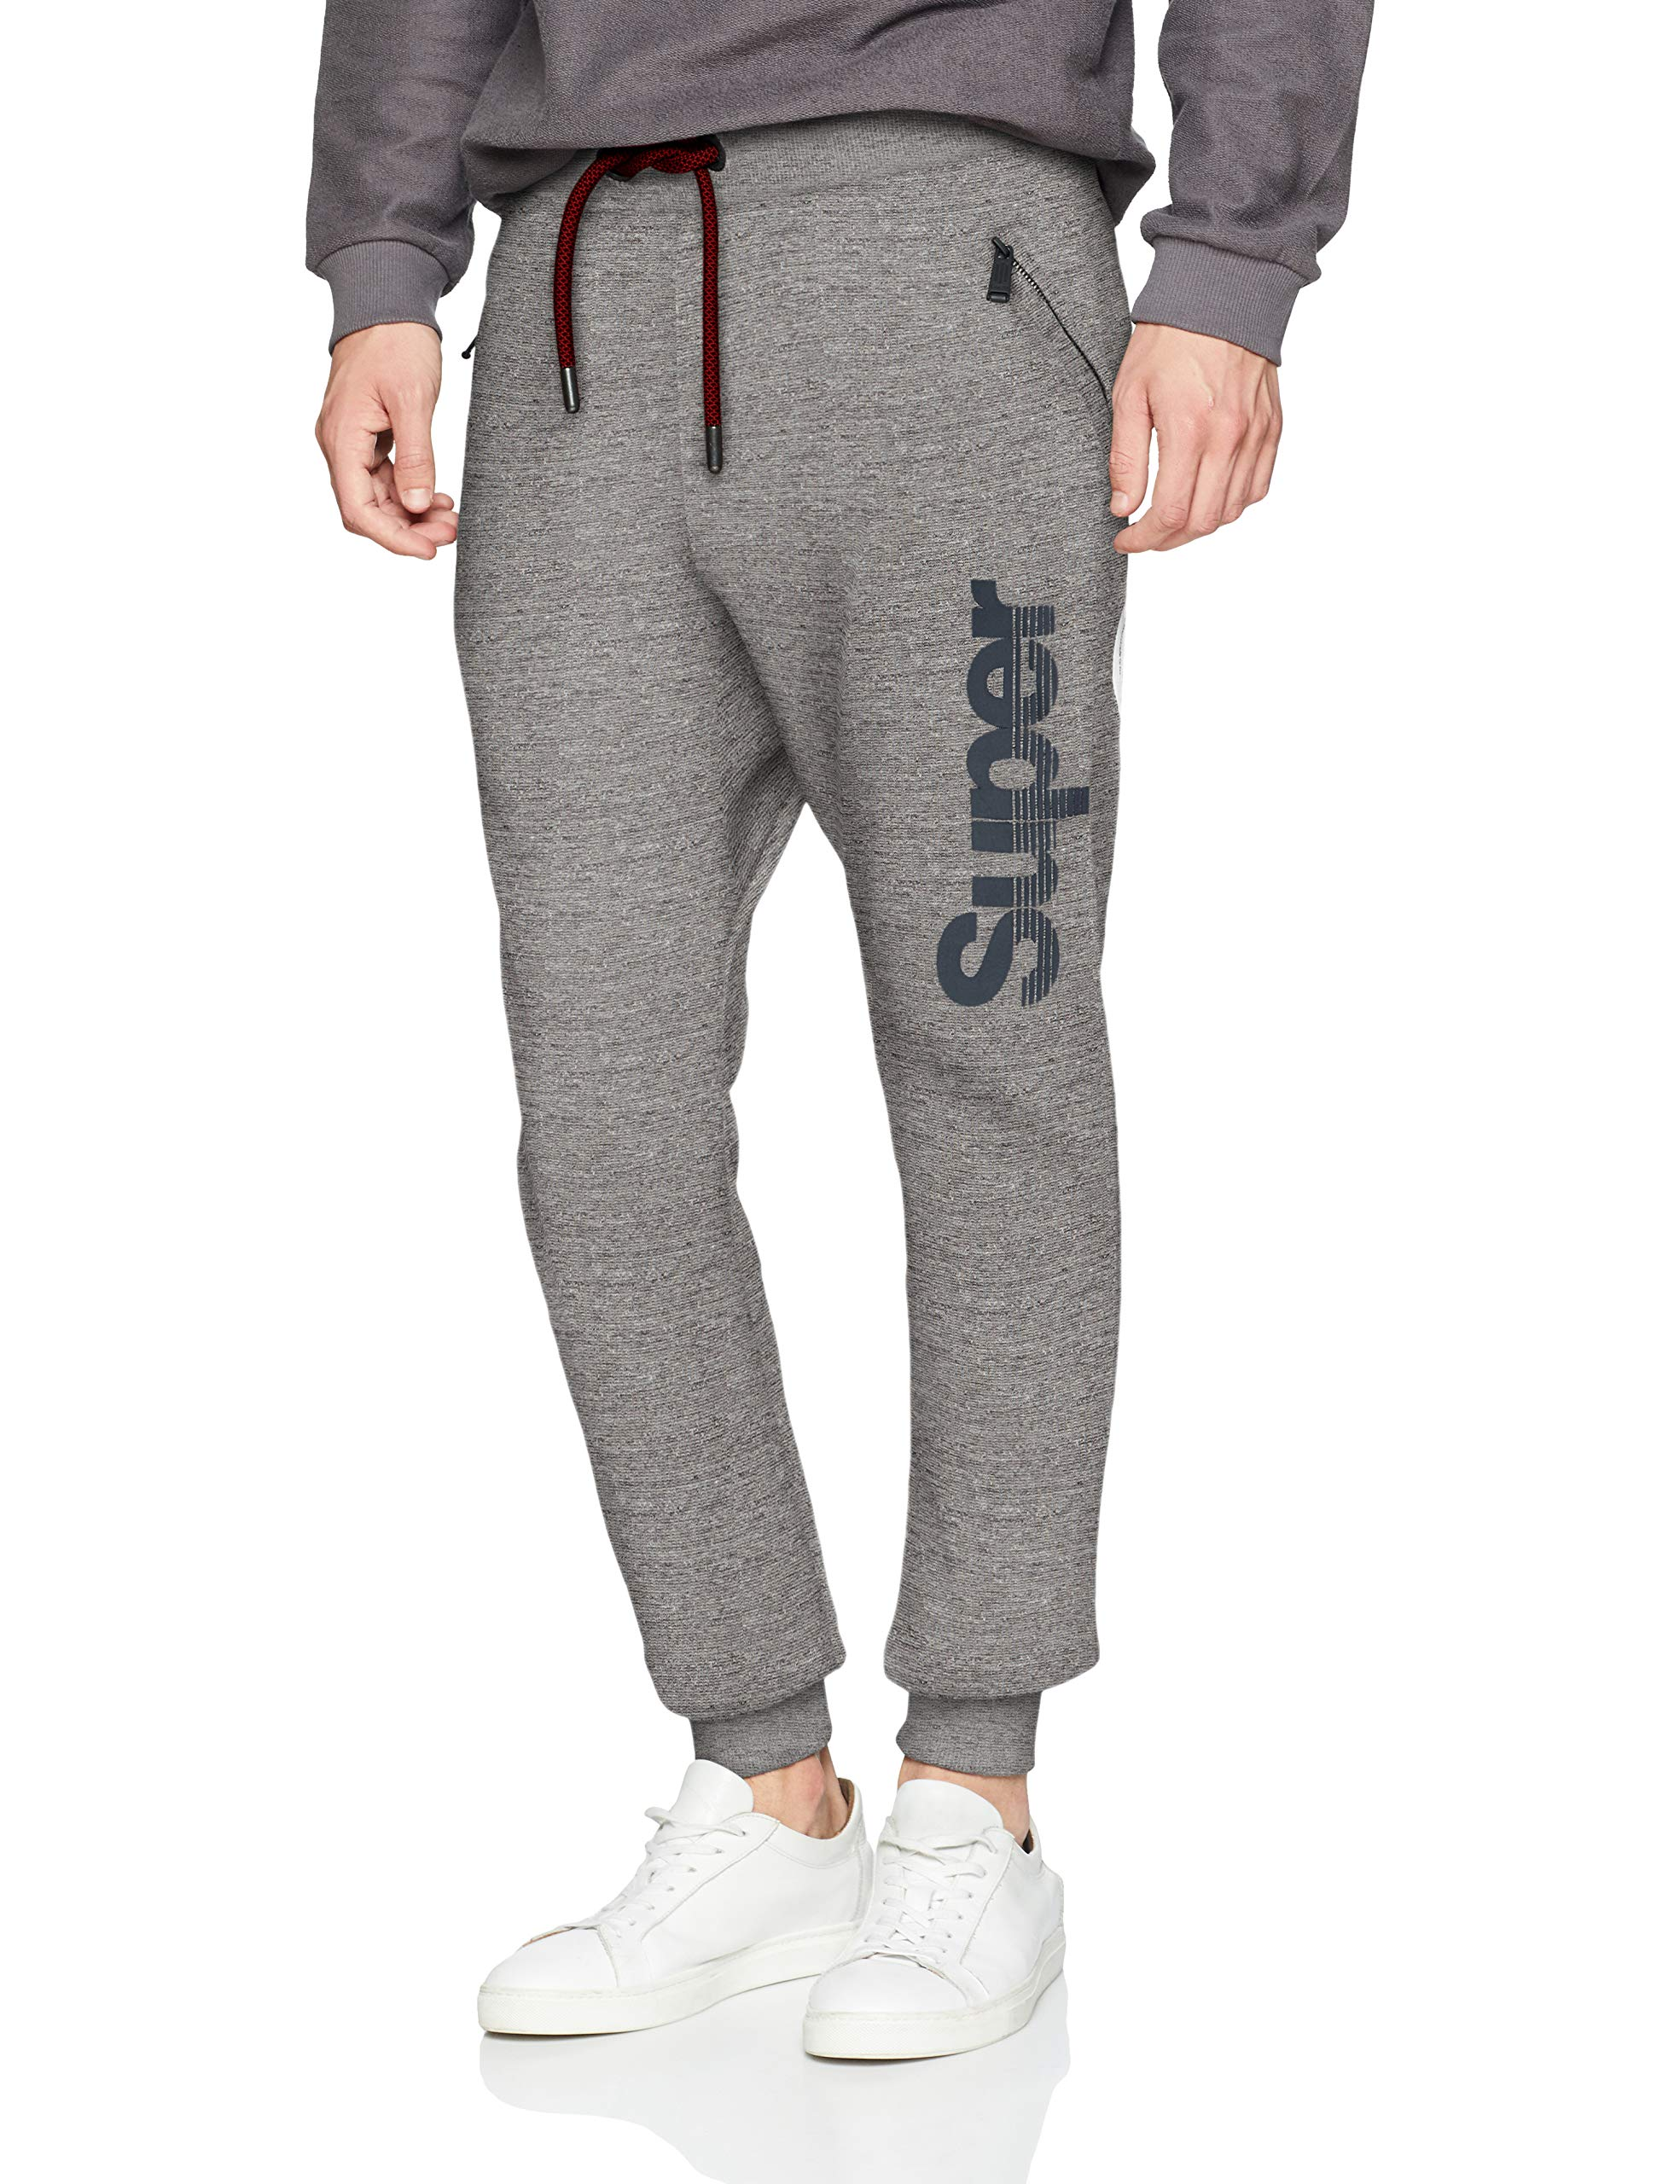 De Pantalon Grey Superdry Trial Angled Time Px142taille FabricantMediumHomme Jogger SportGrishammer Pkt Grit PwO80XNnZk